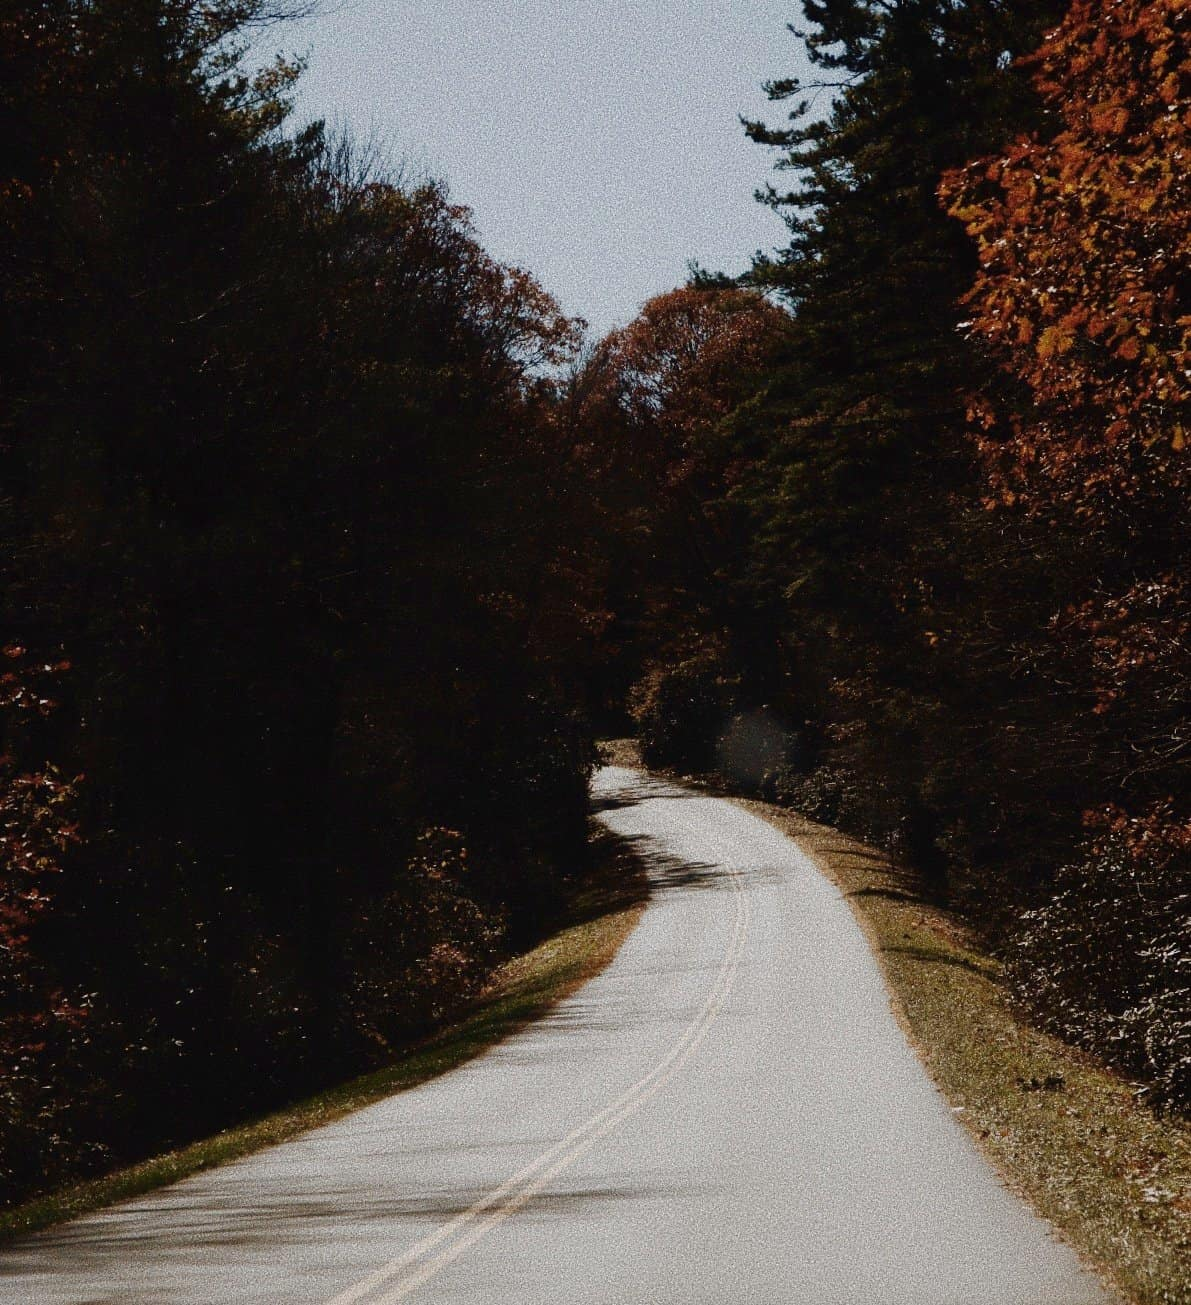 a picture of a road with trees